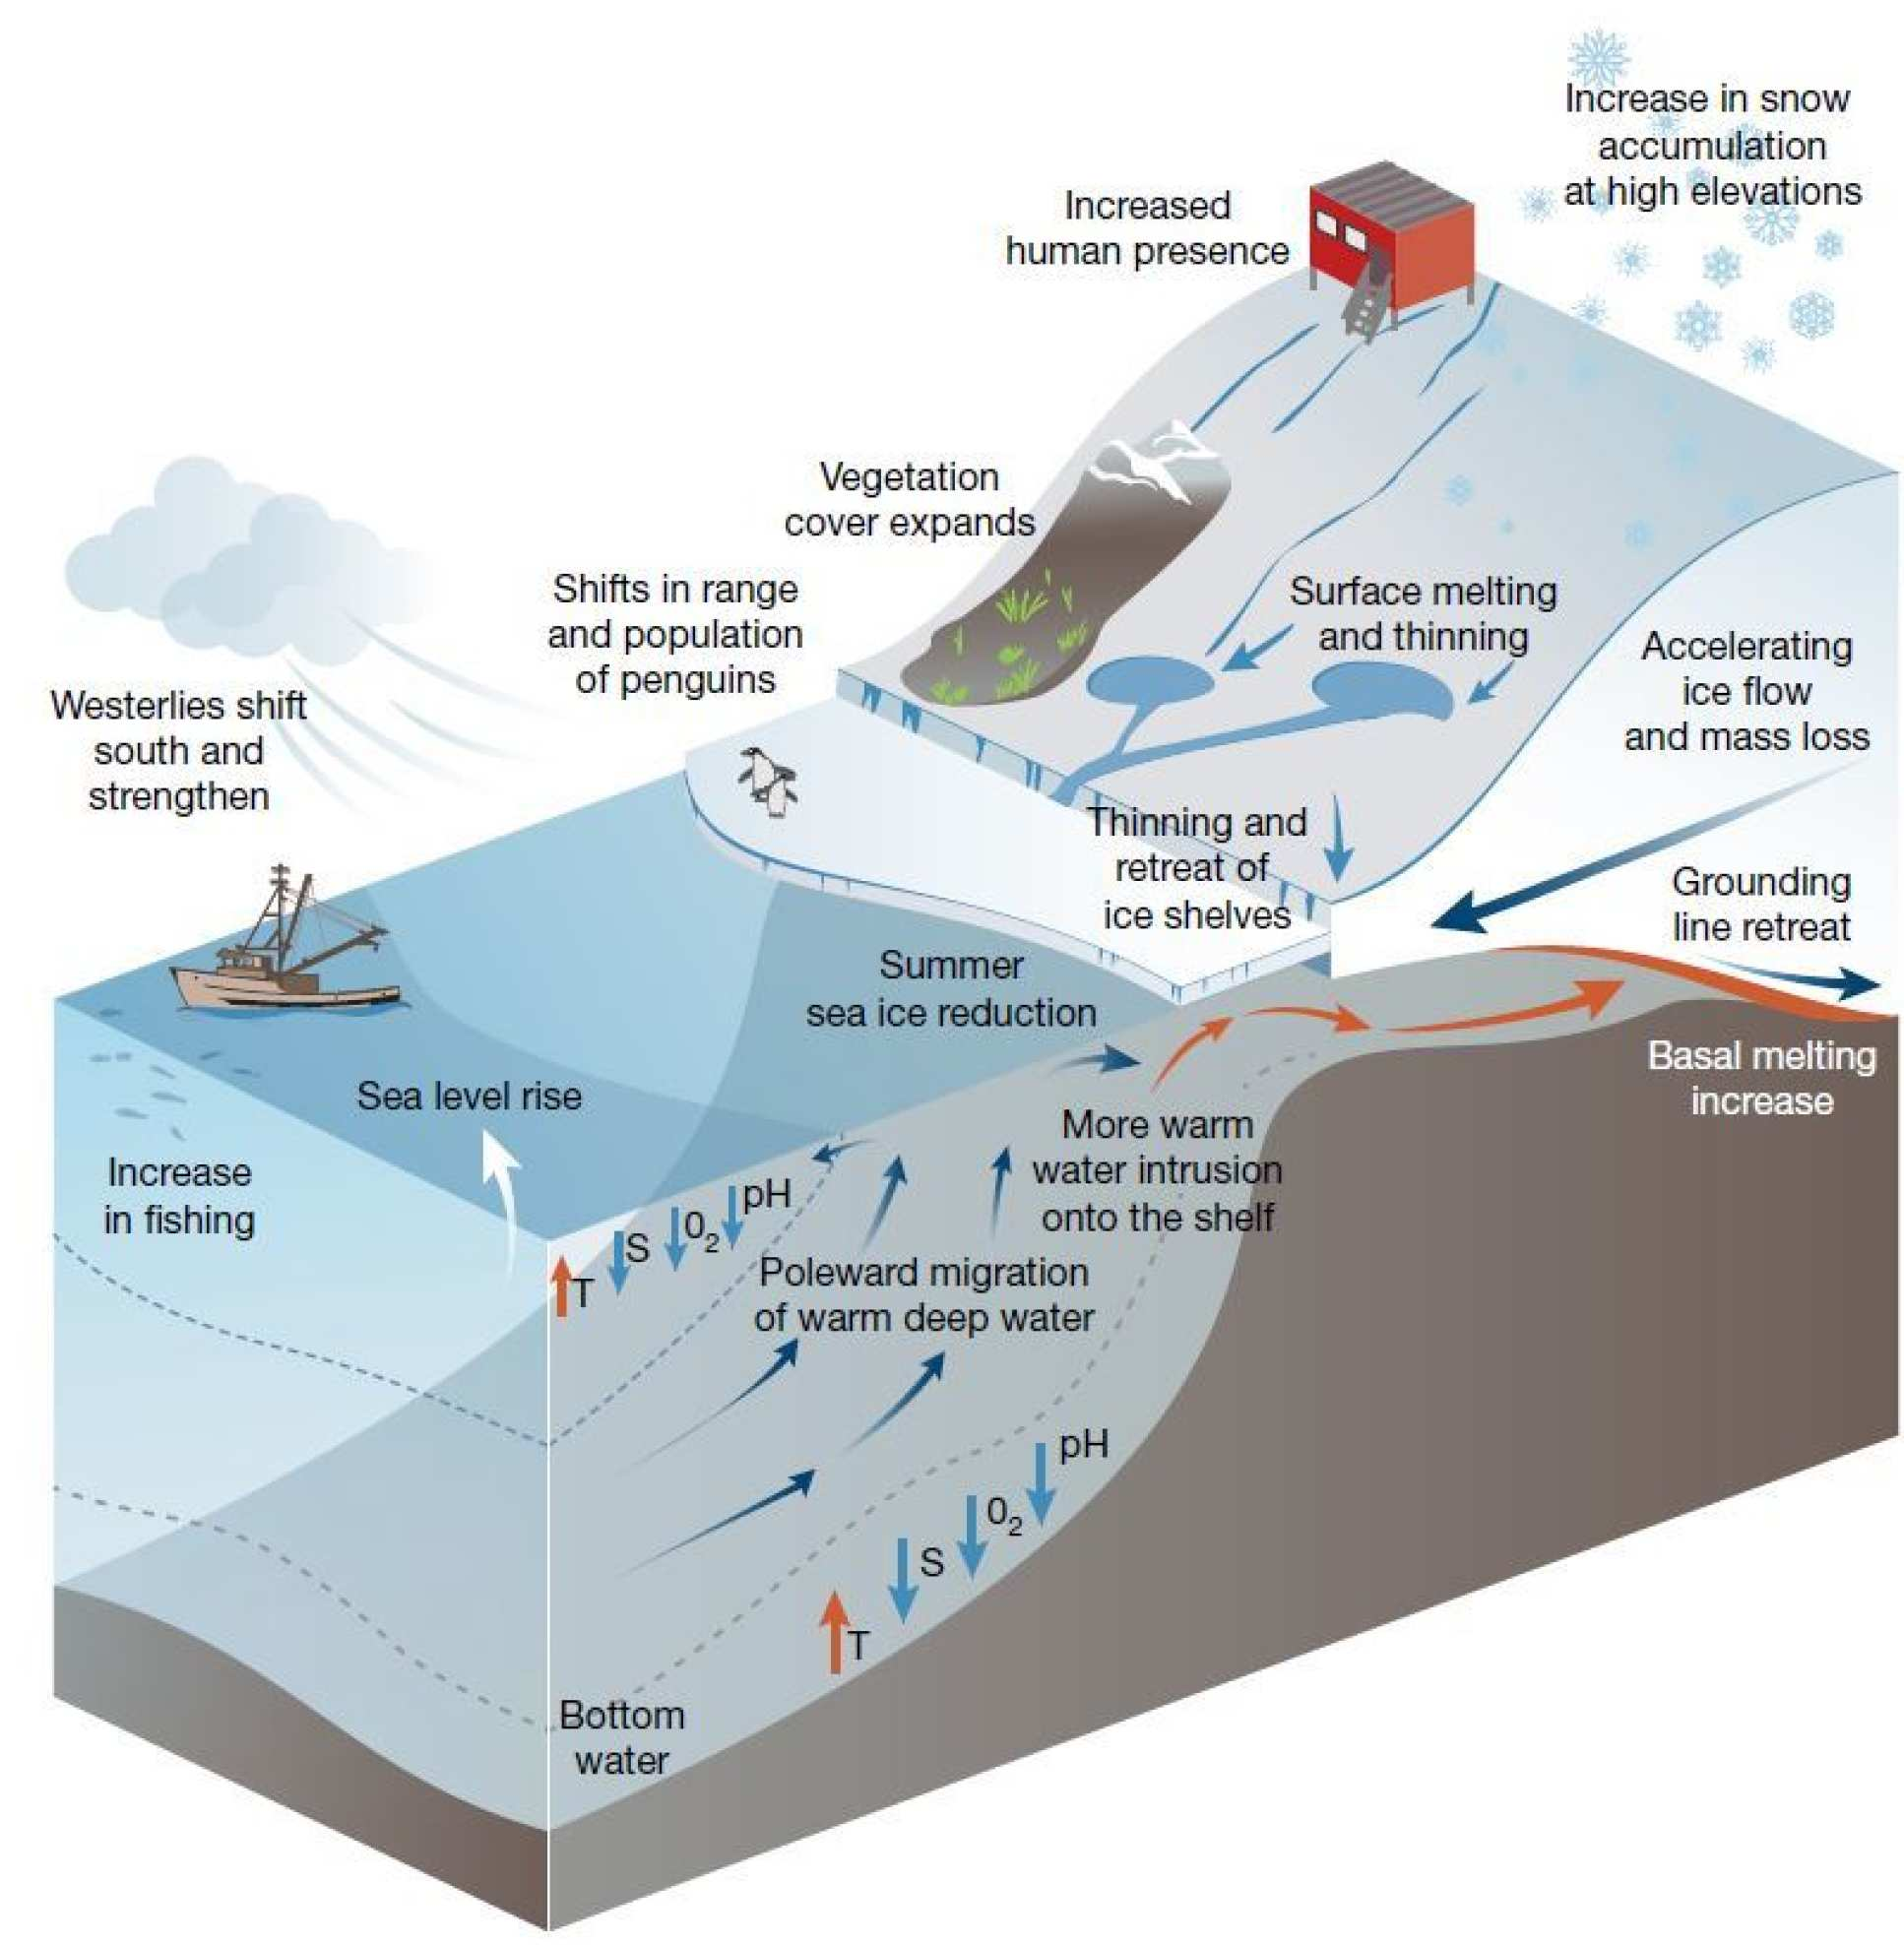 Diagram summarising the impacts on Antarctica